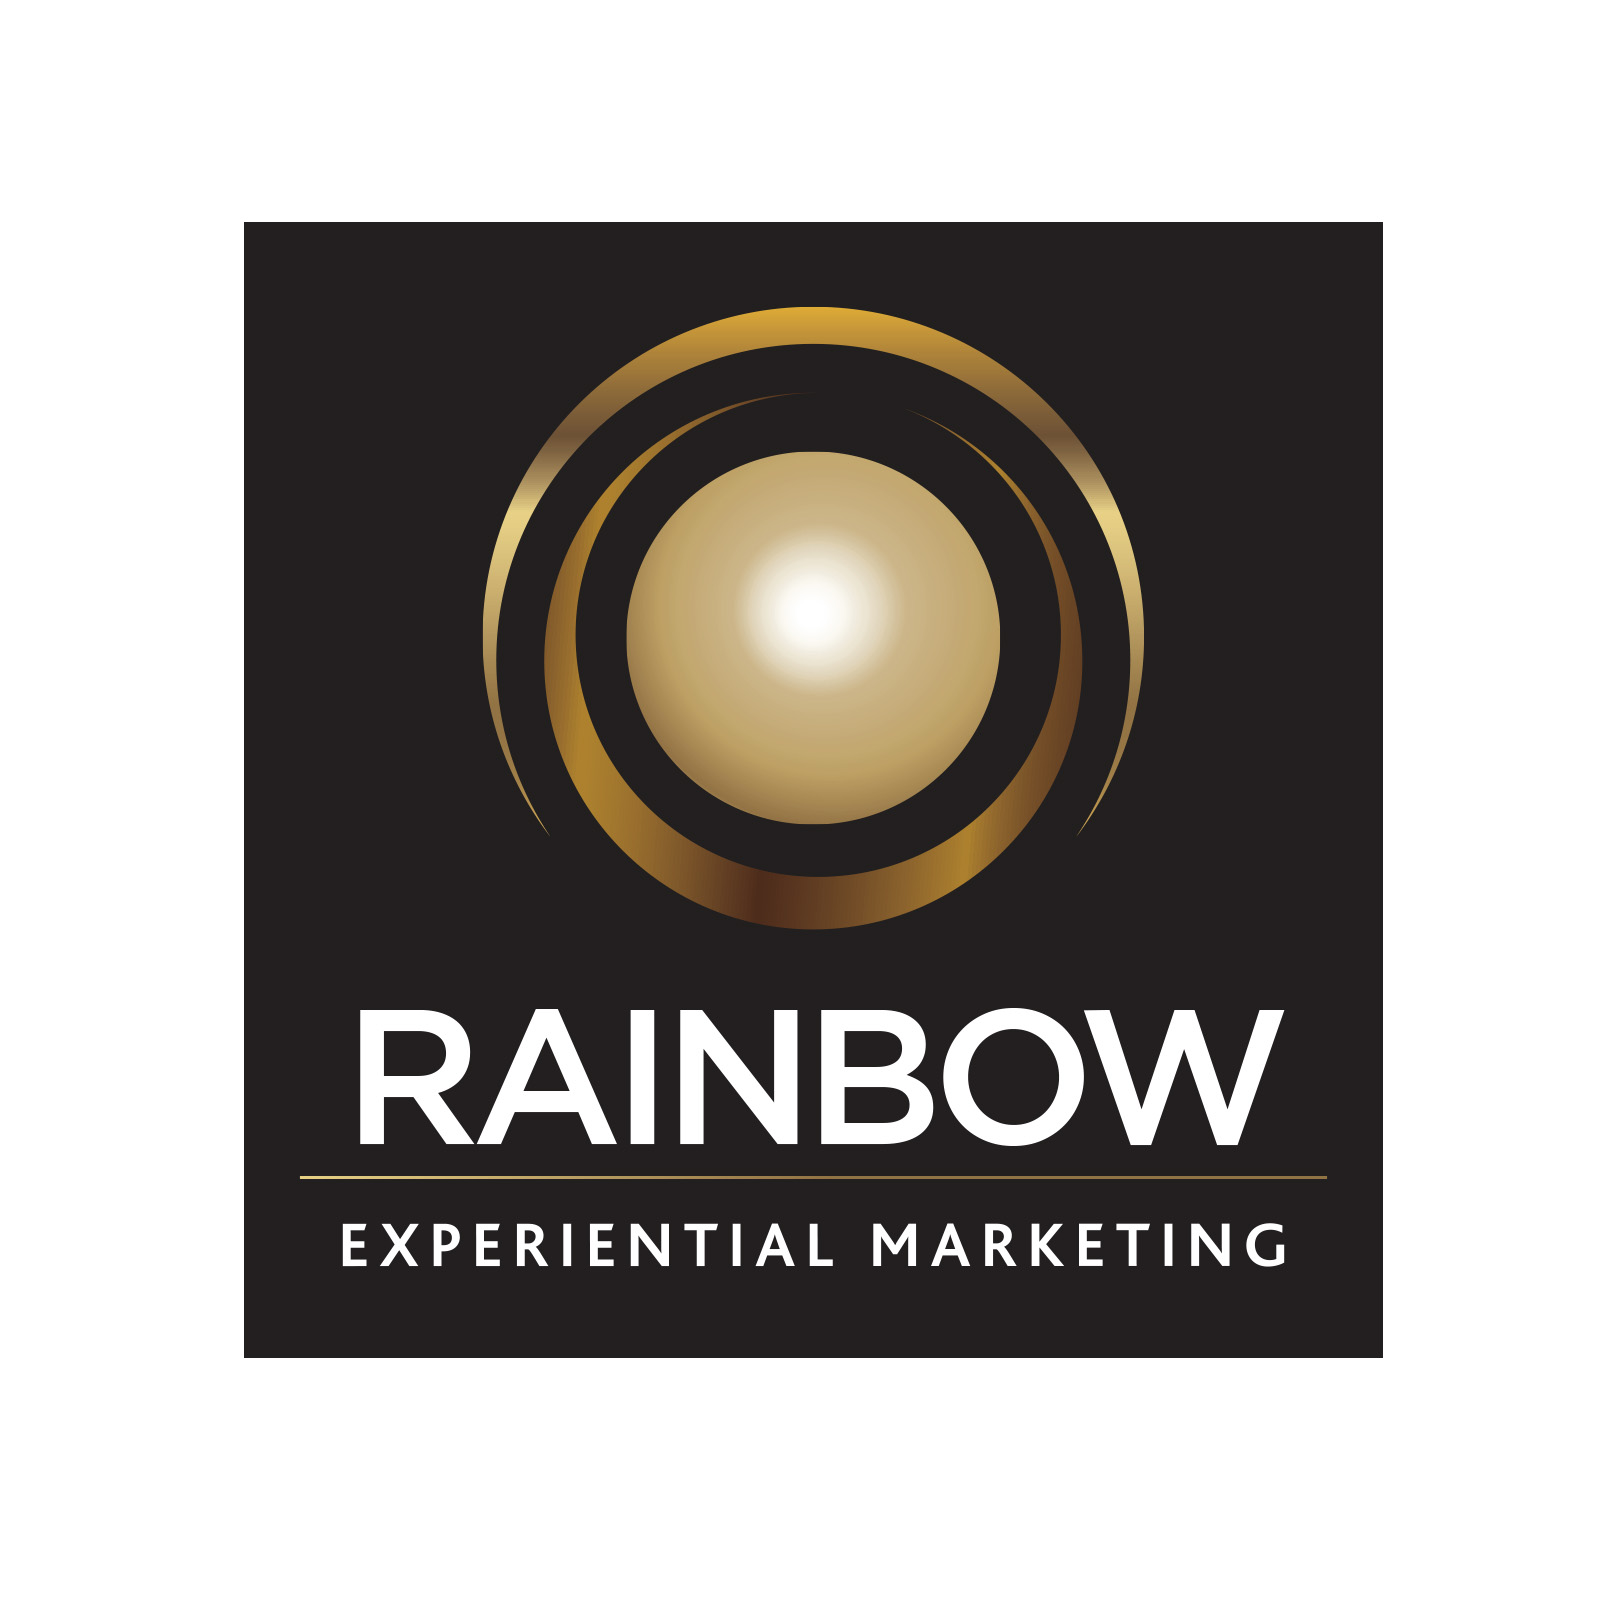 Rainbow Experiential Marketing logo for Realise A Dream competition to support local entrepreneurs in the food industry